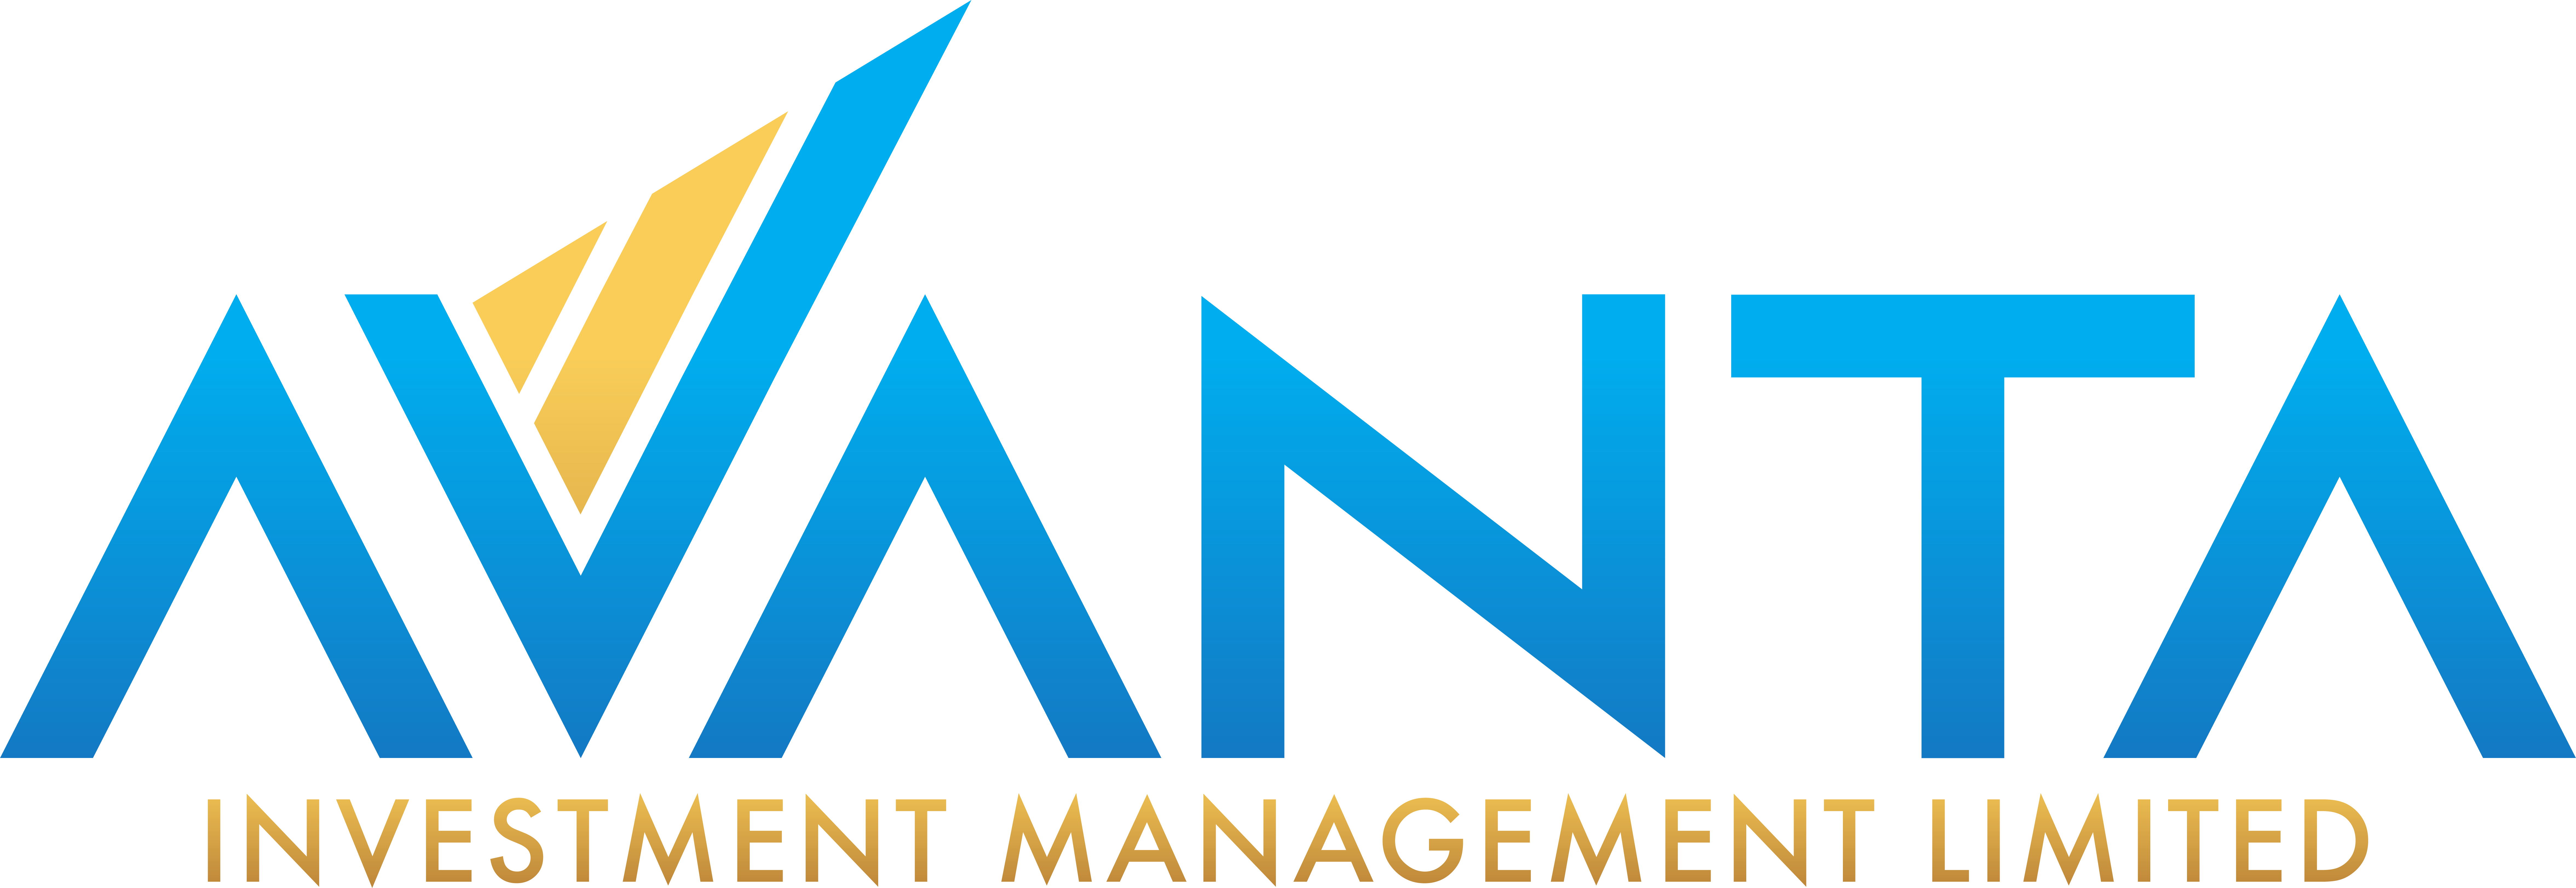 Avanta Investment Management Limited Announces Plans To Launch Their Own Mobile Trading App